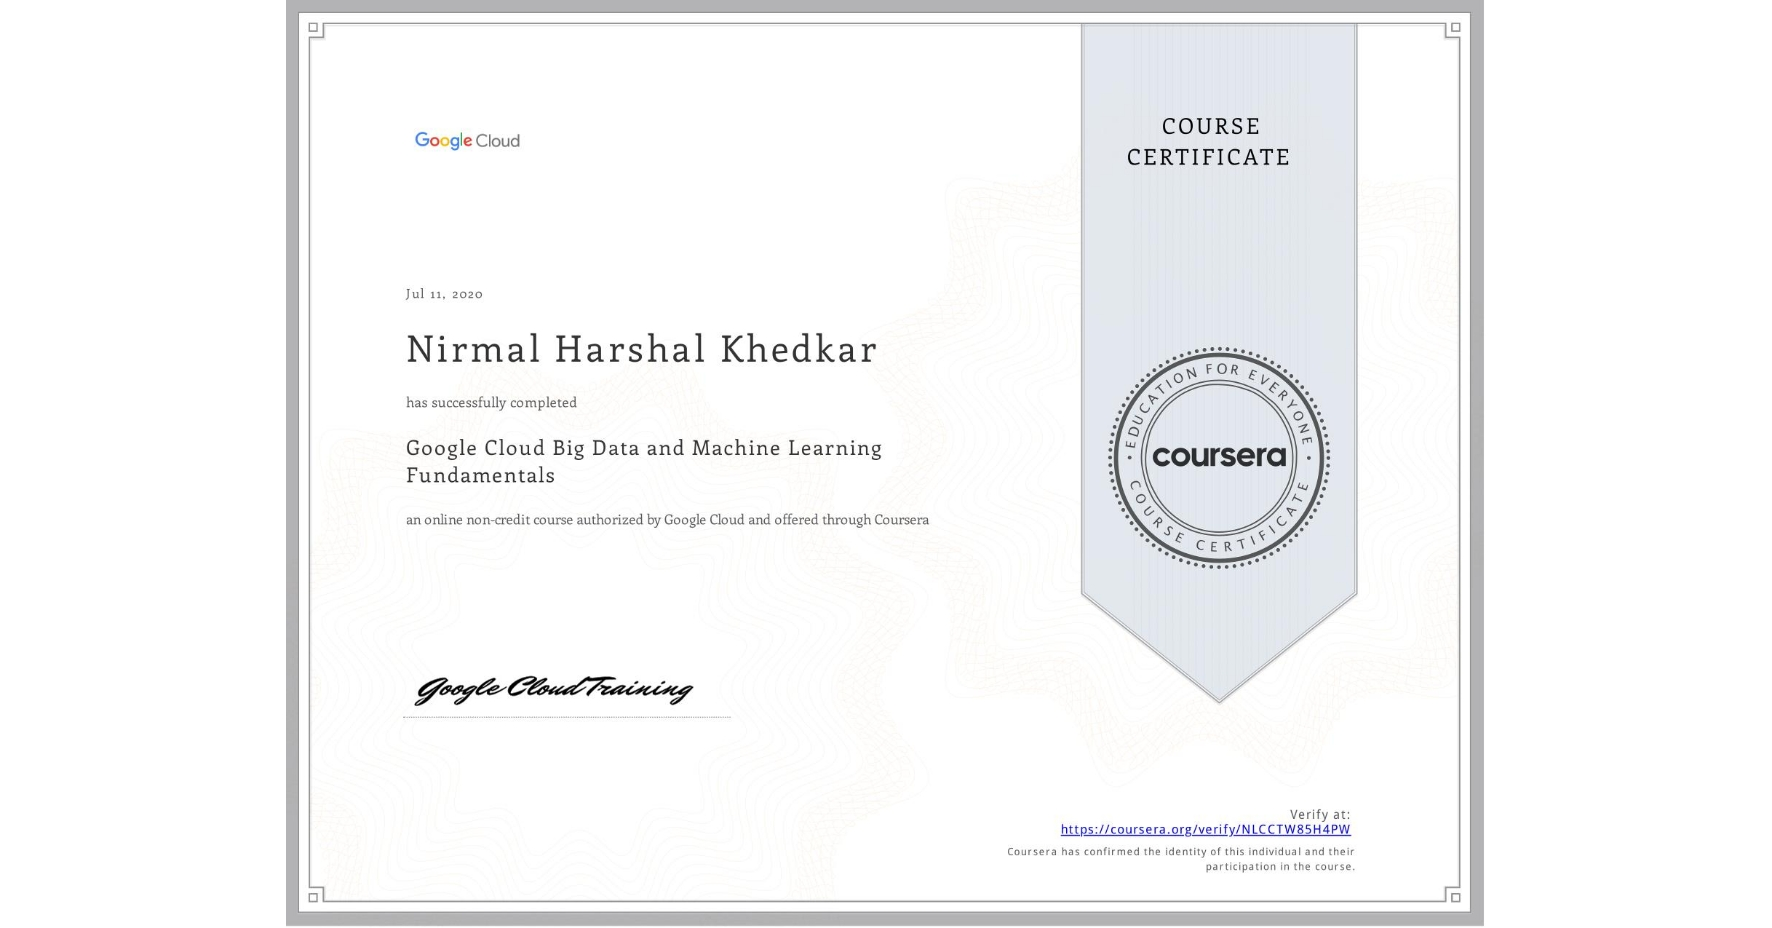 View certificate for Nirmal Harshal Khedkar, Google Cloud Platform Big Data and Machine Learning Fundamentals, an online non-credit course authorized by Google Cloud and offered through Coursera